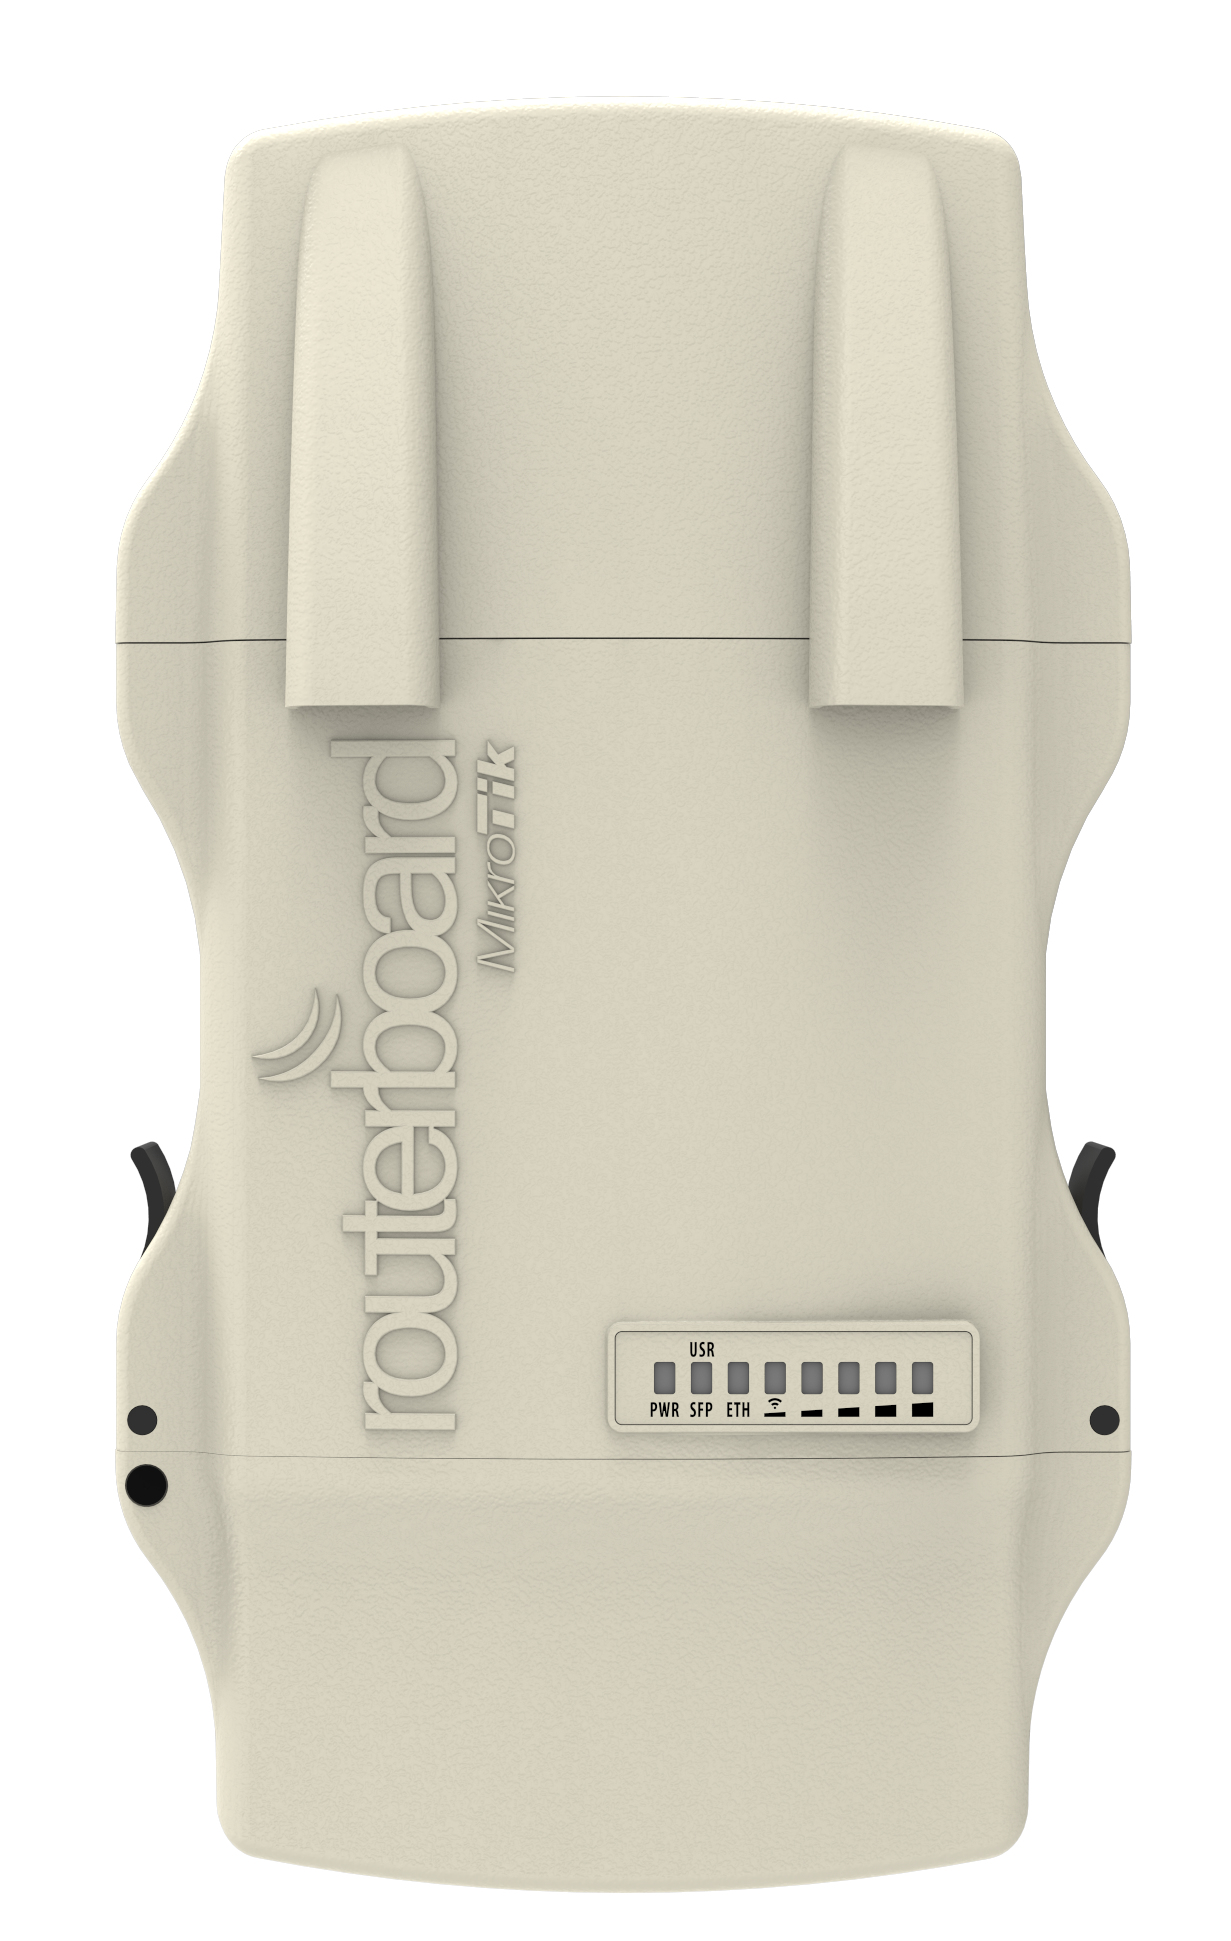 Mikrotik NetMetal 5 Power over Ethernet (PoE) WLAN access point